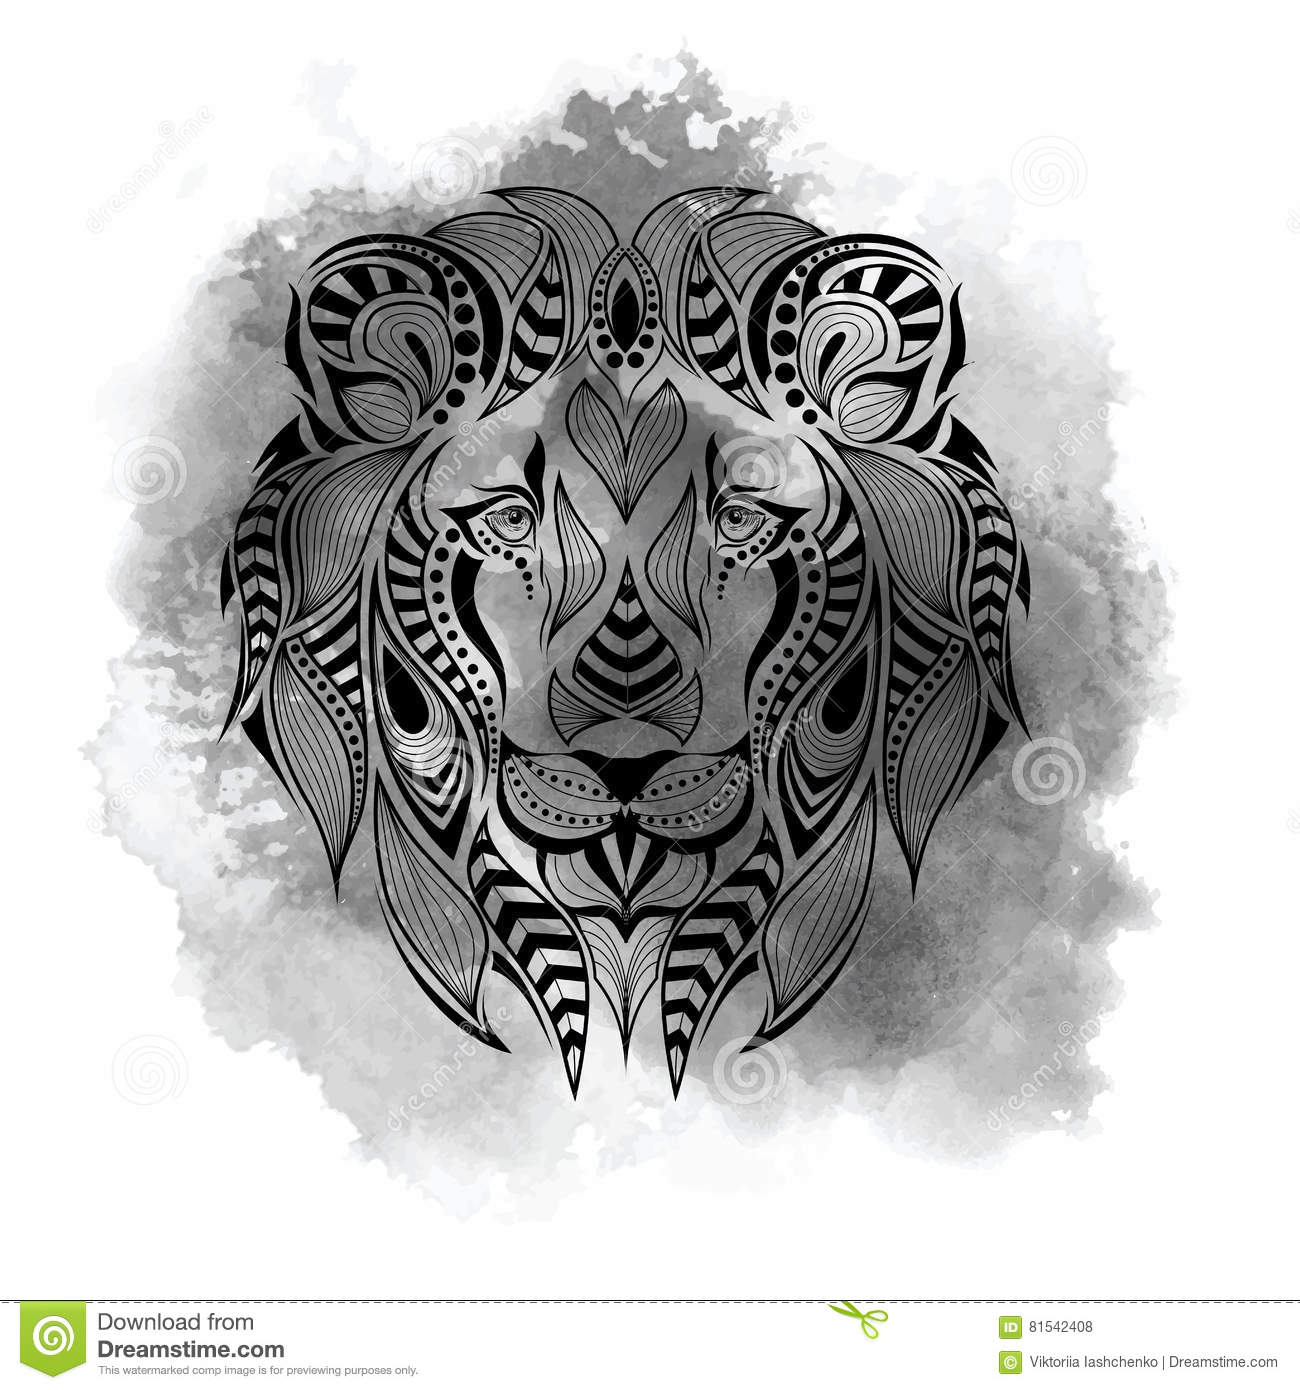 patterned colored head of the lion african indian totem tattoo design it may be used for. Black Bedroom Furniture Sets. Home Design Ideas